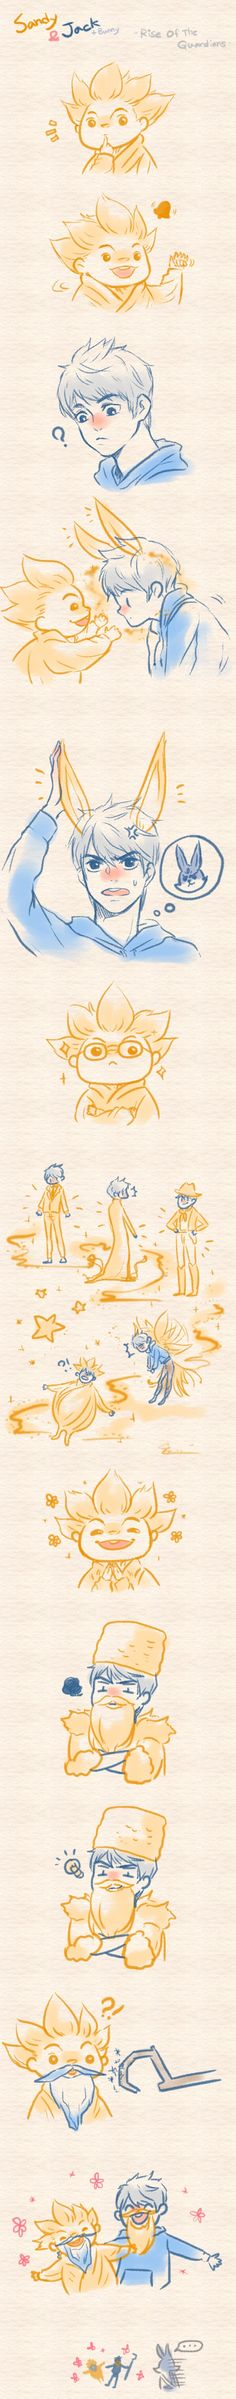 Rise Of The Guardians - Sandy and Jack by ispan0w0.deviantart.com on @deviantART